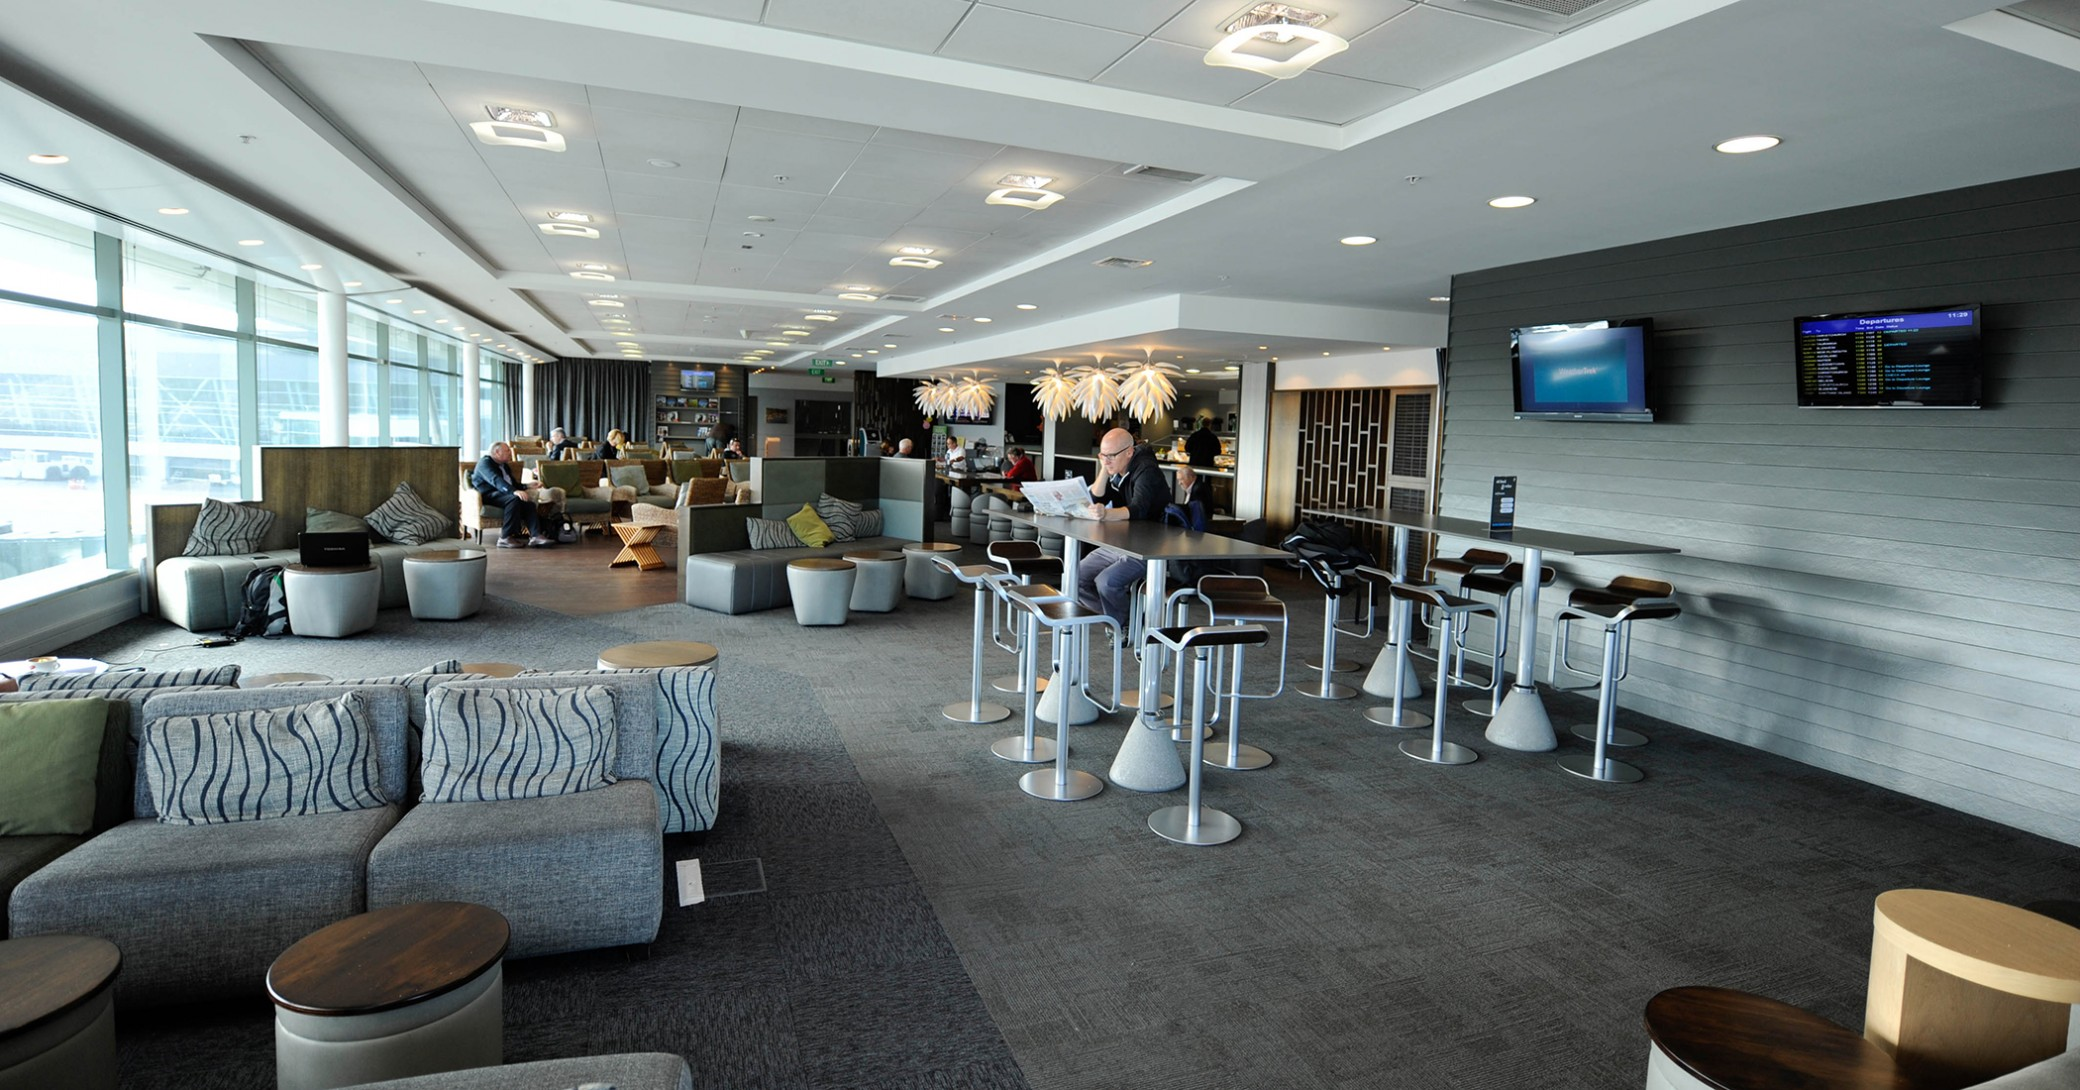 Air New Zealand's domestic lounge in Wellington